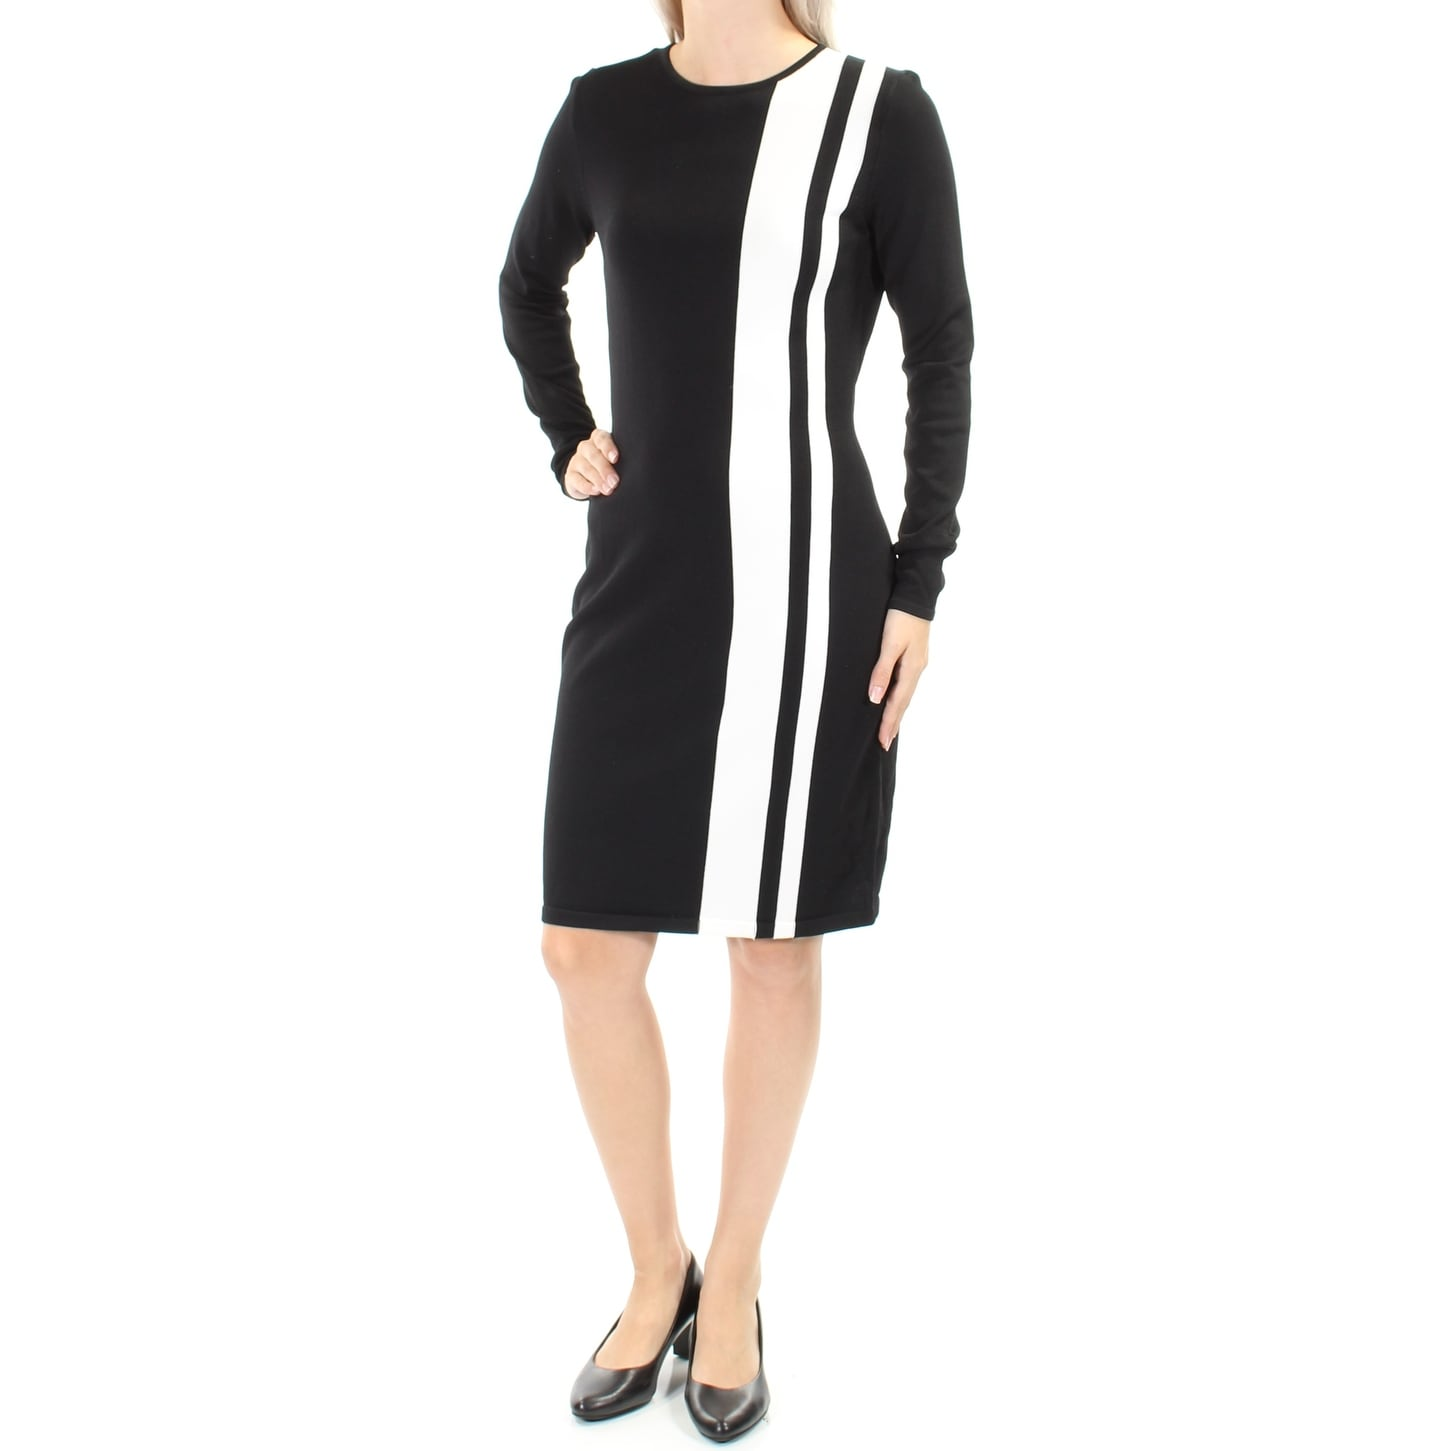 05508d7a1608 Shop Womens Black Long Sleeve Above The Knee Body Con Dress Size: L - Free  Shipping On Orders Over $45 - Overstock.com - 22433250